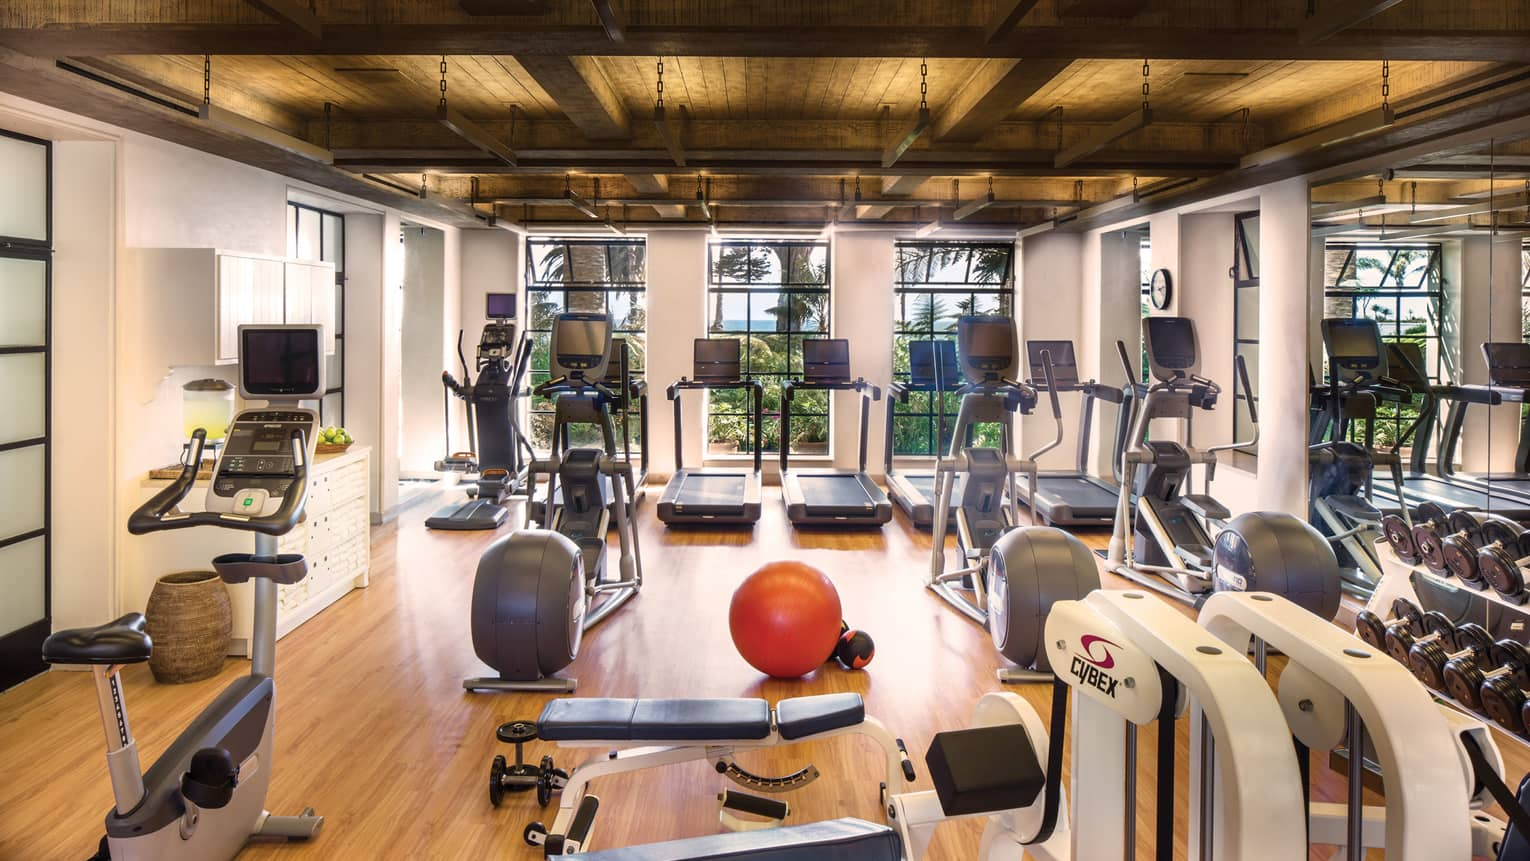 Fitness Centre cardio machines, weight centre, red pilates ball